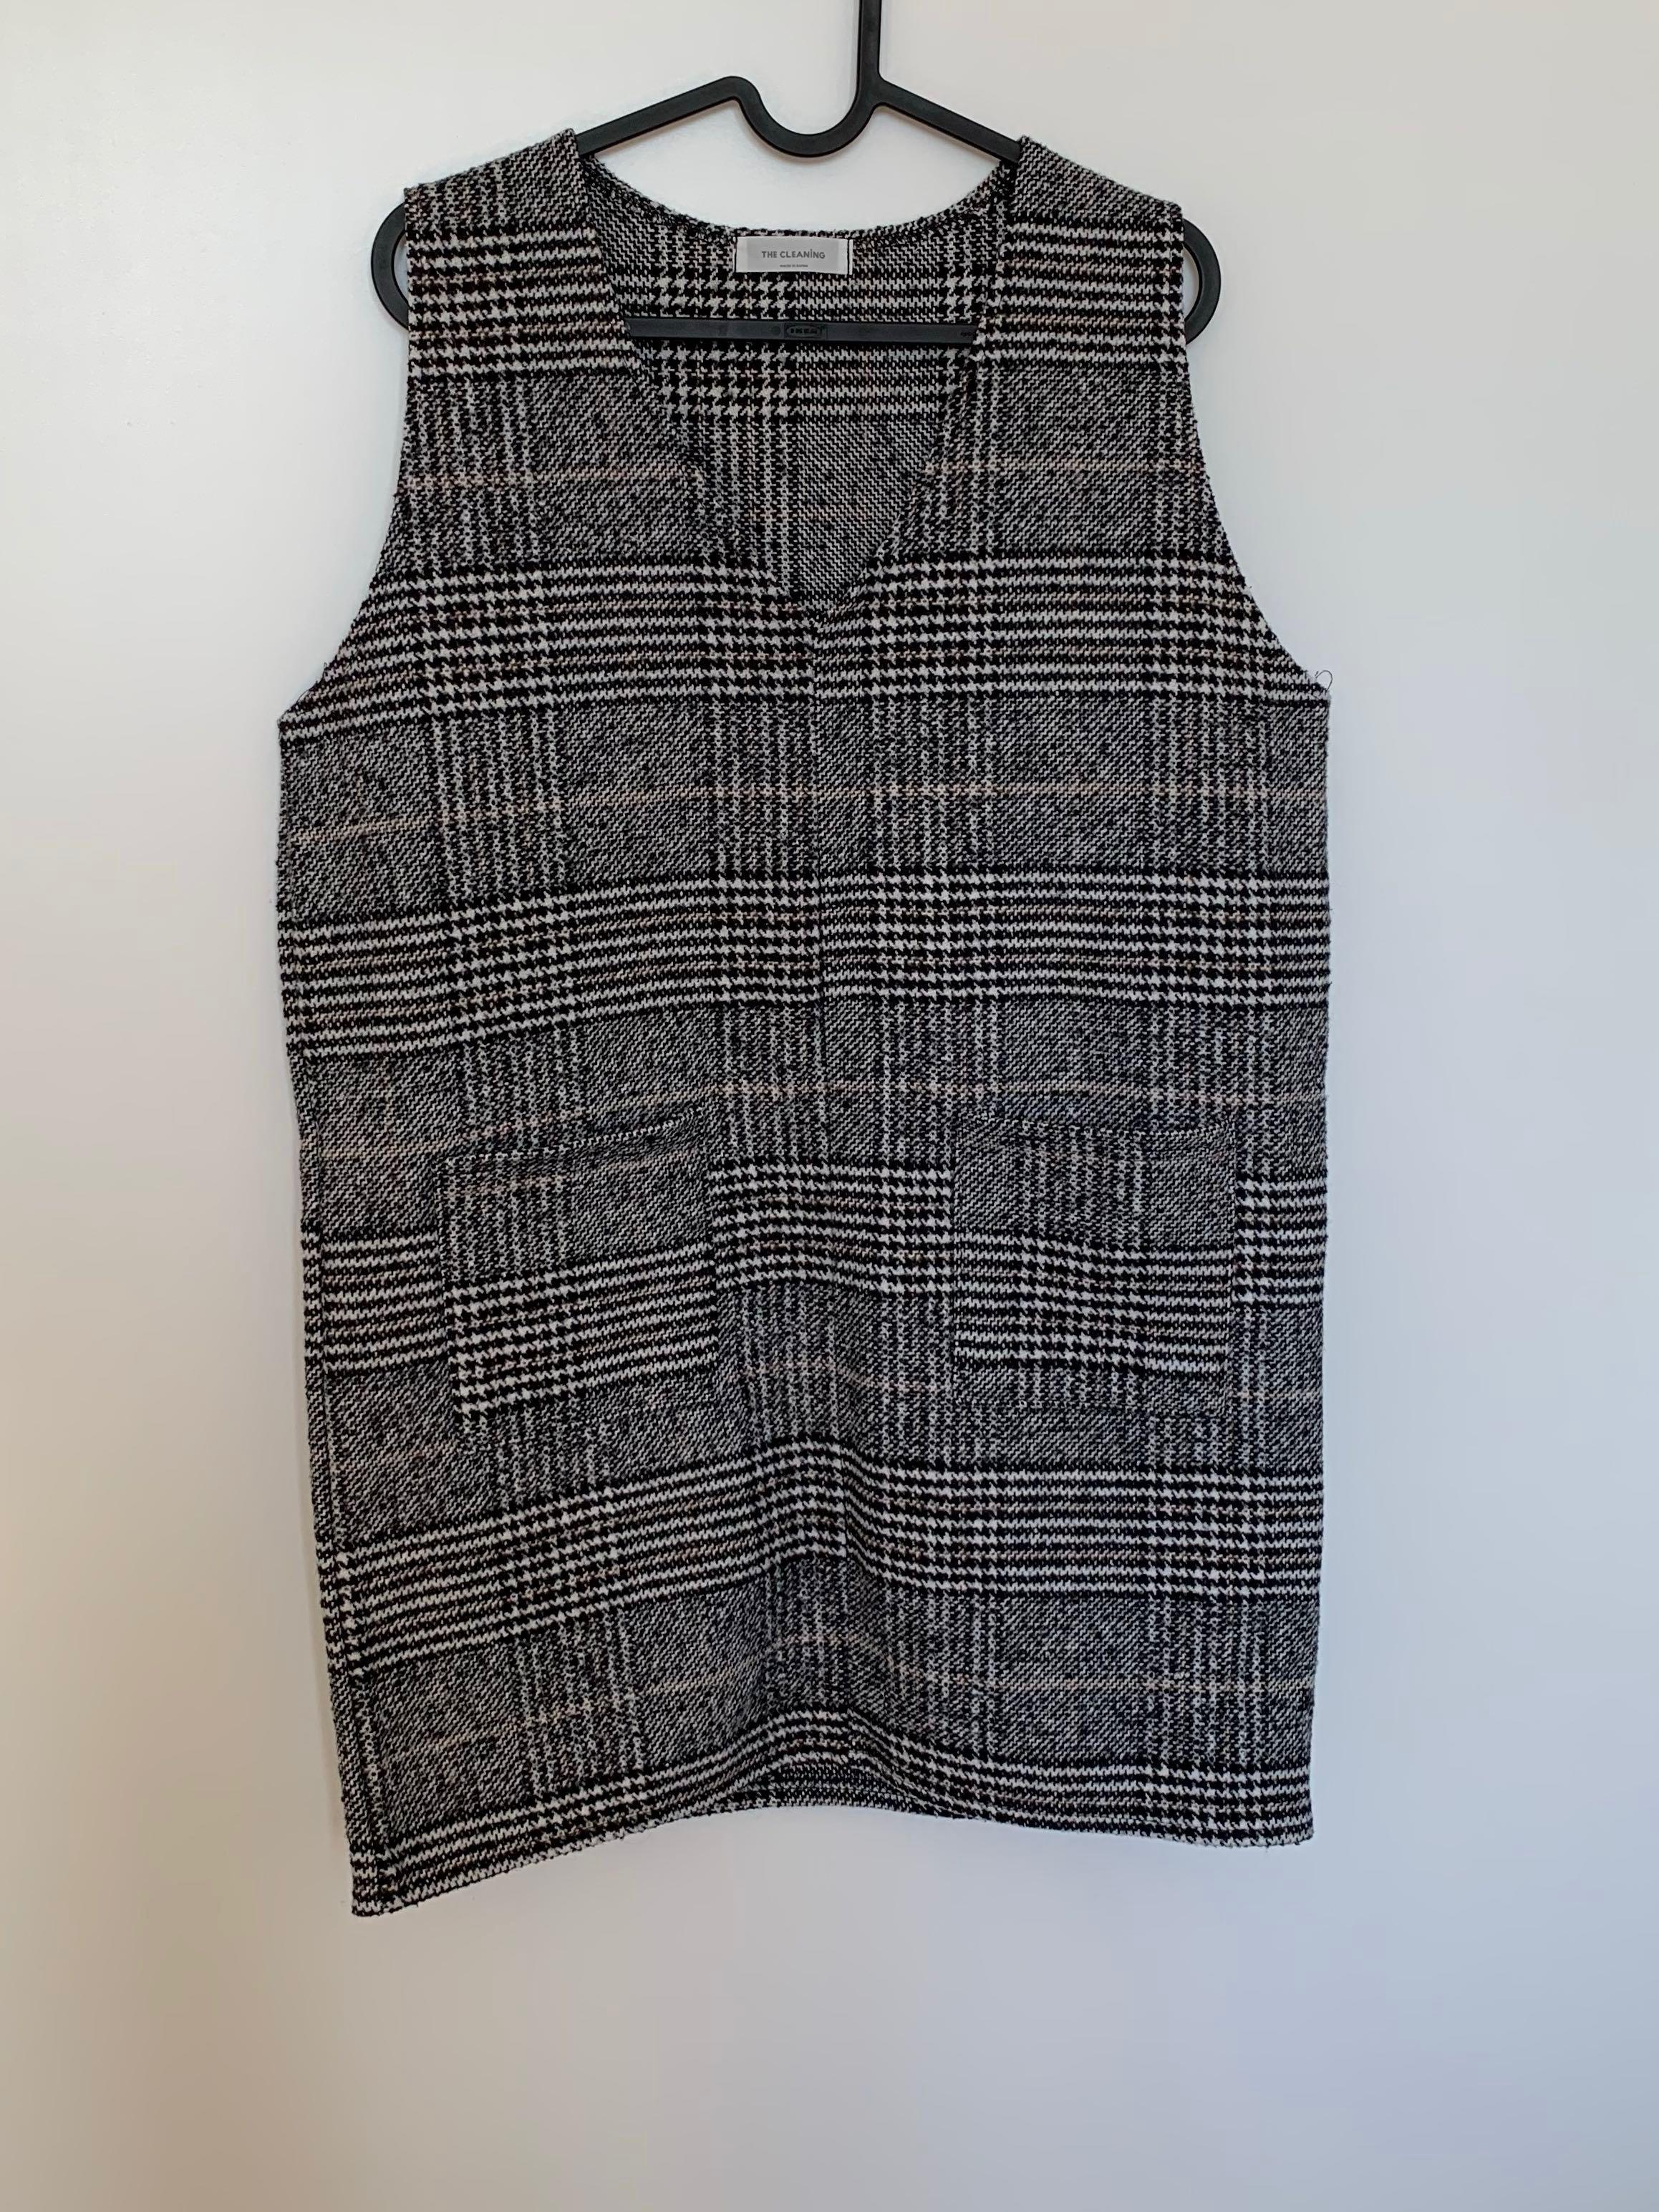 Checkered Dress (Worn Once)